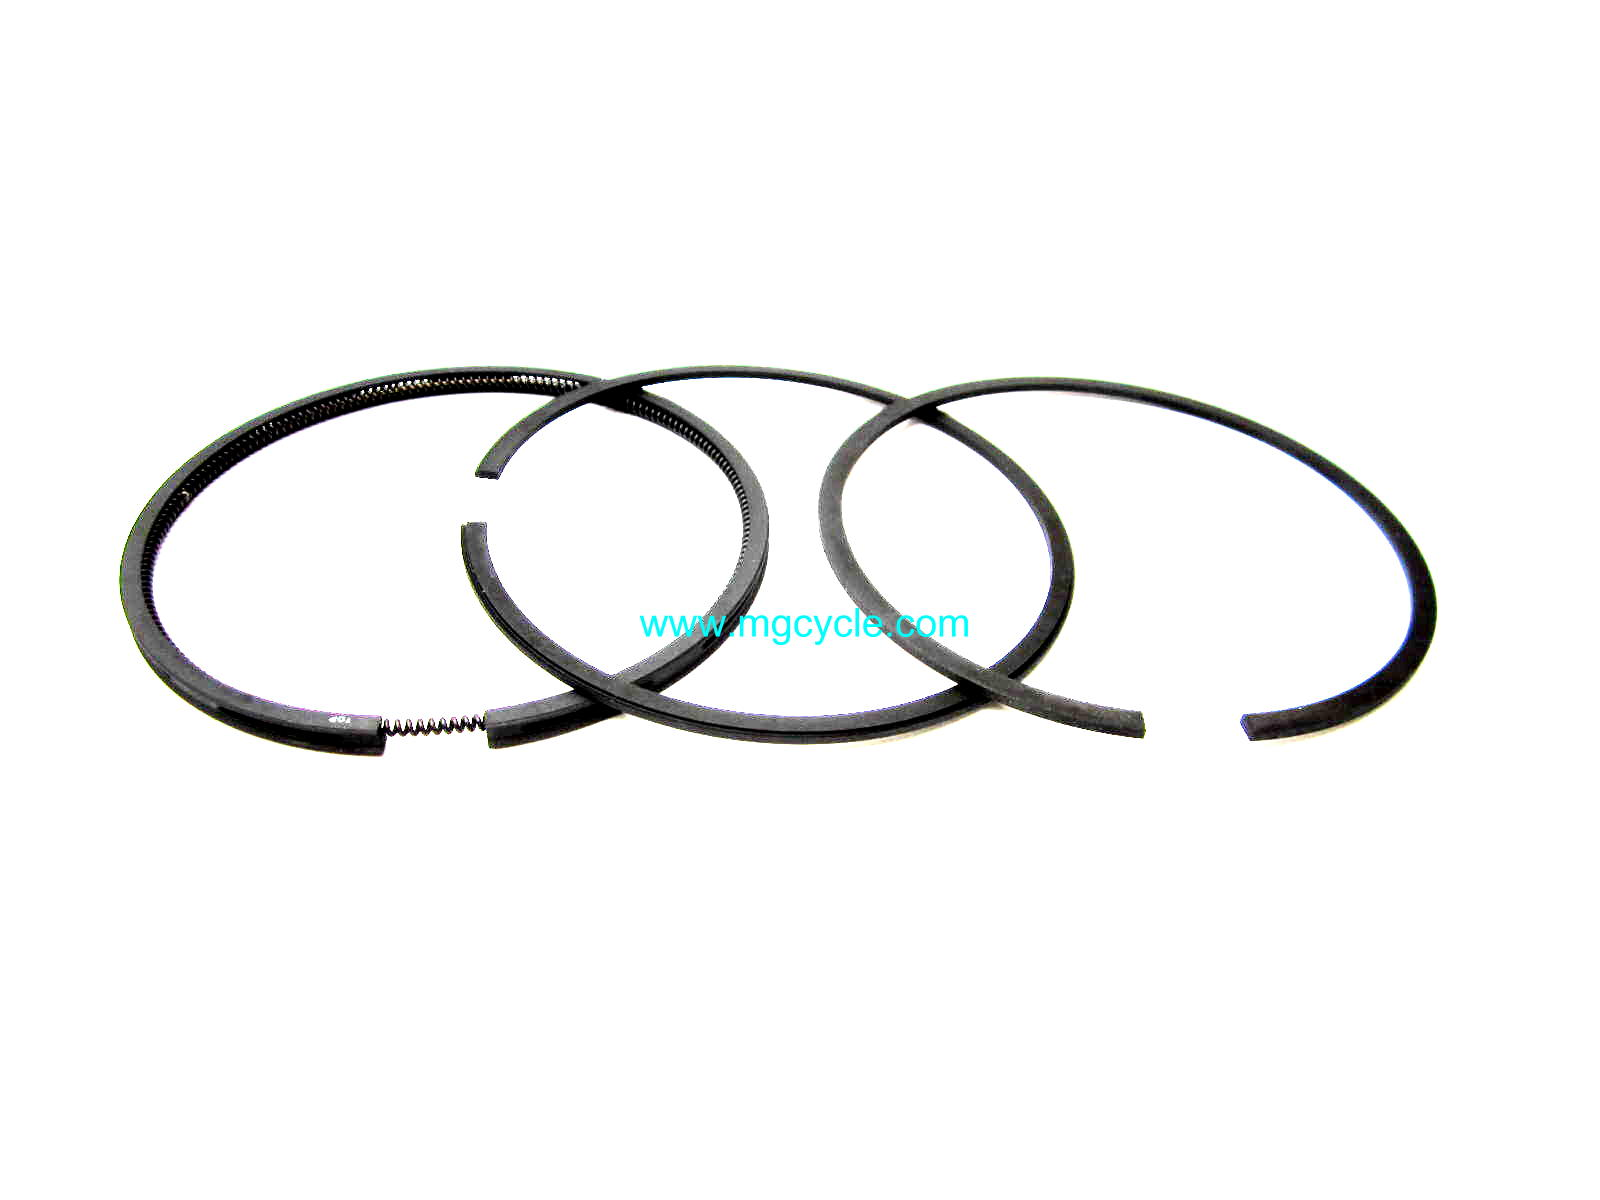 3 ring piston ring set, for 88mm bores